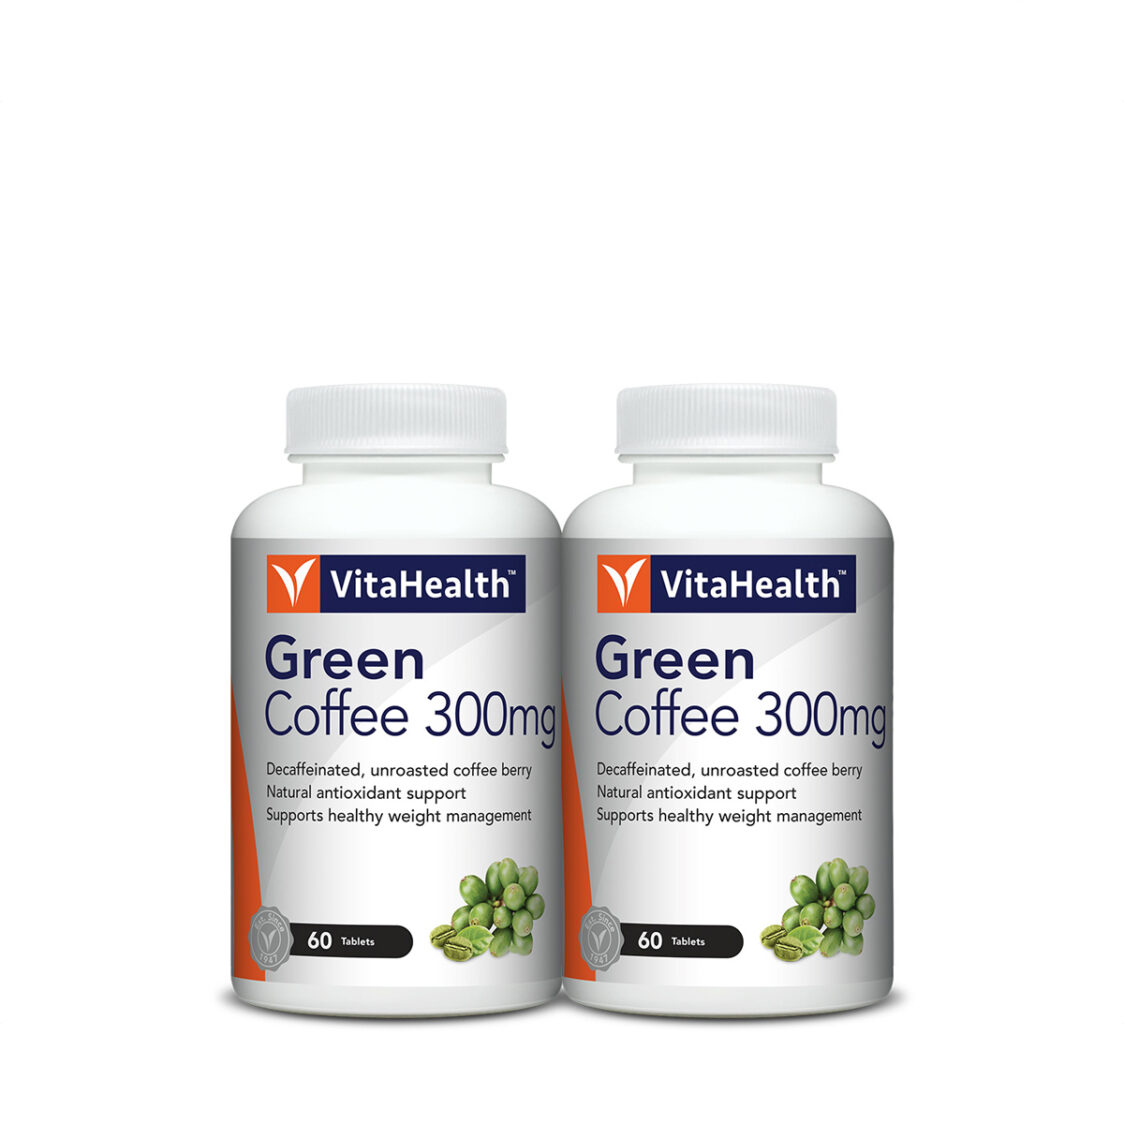 VitaHealth Green Coffee Berry 2x60 Tablets